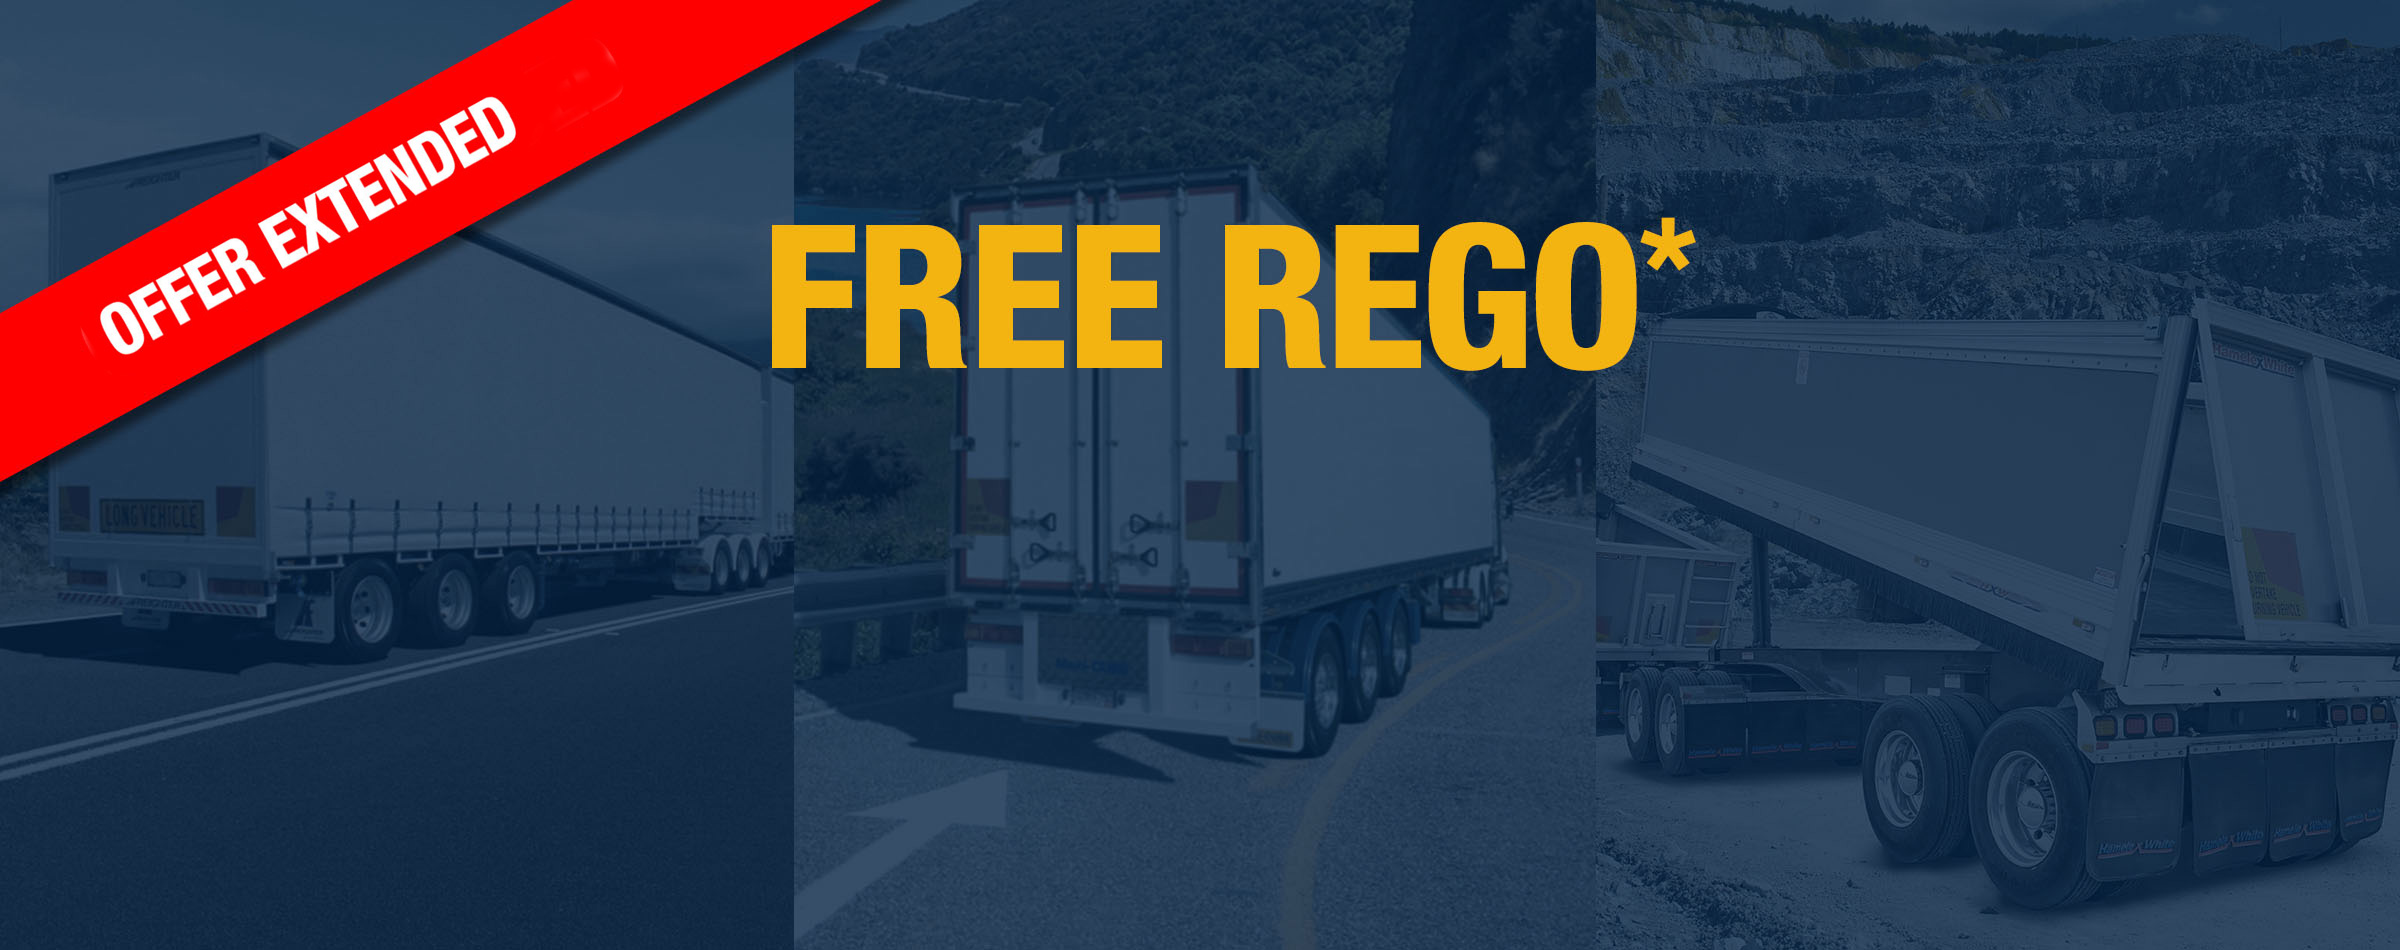 Free Registration On new trailers ordered in August